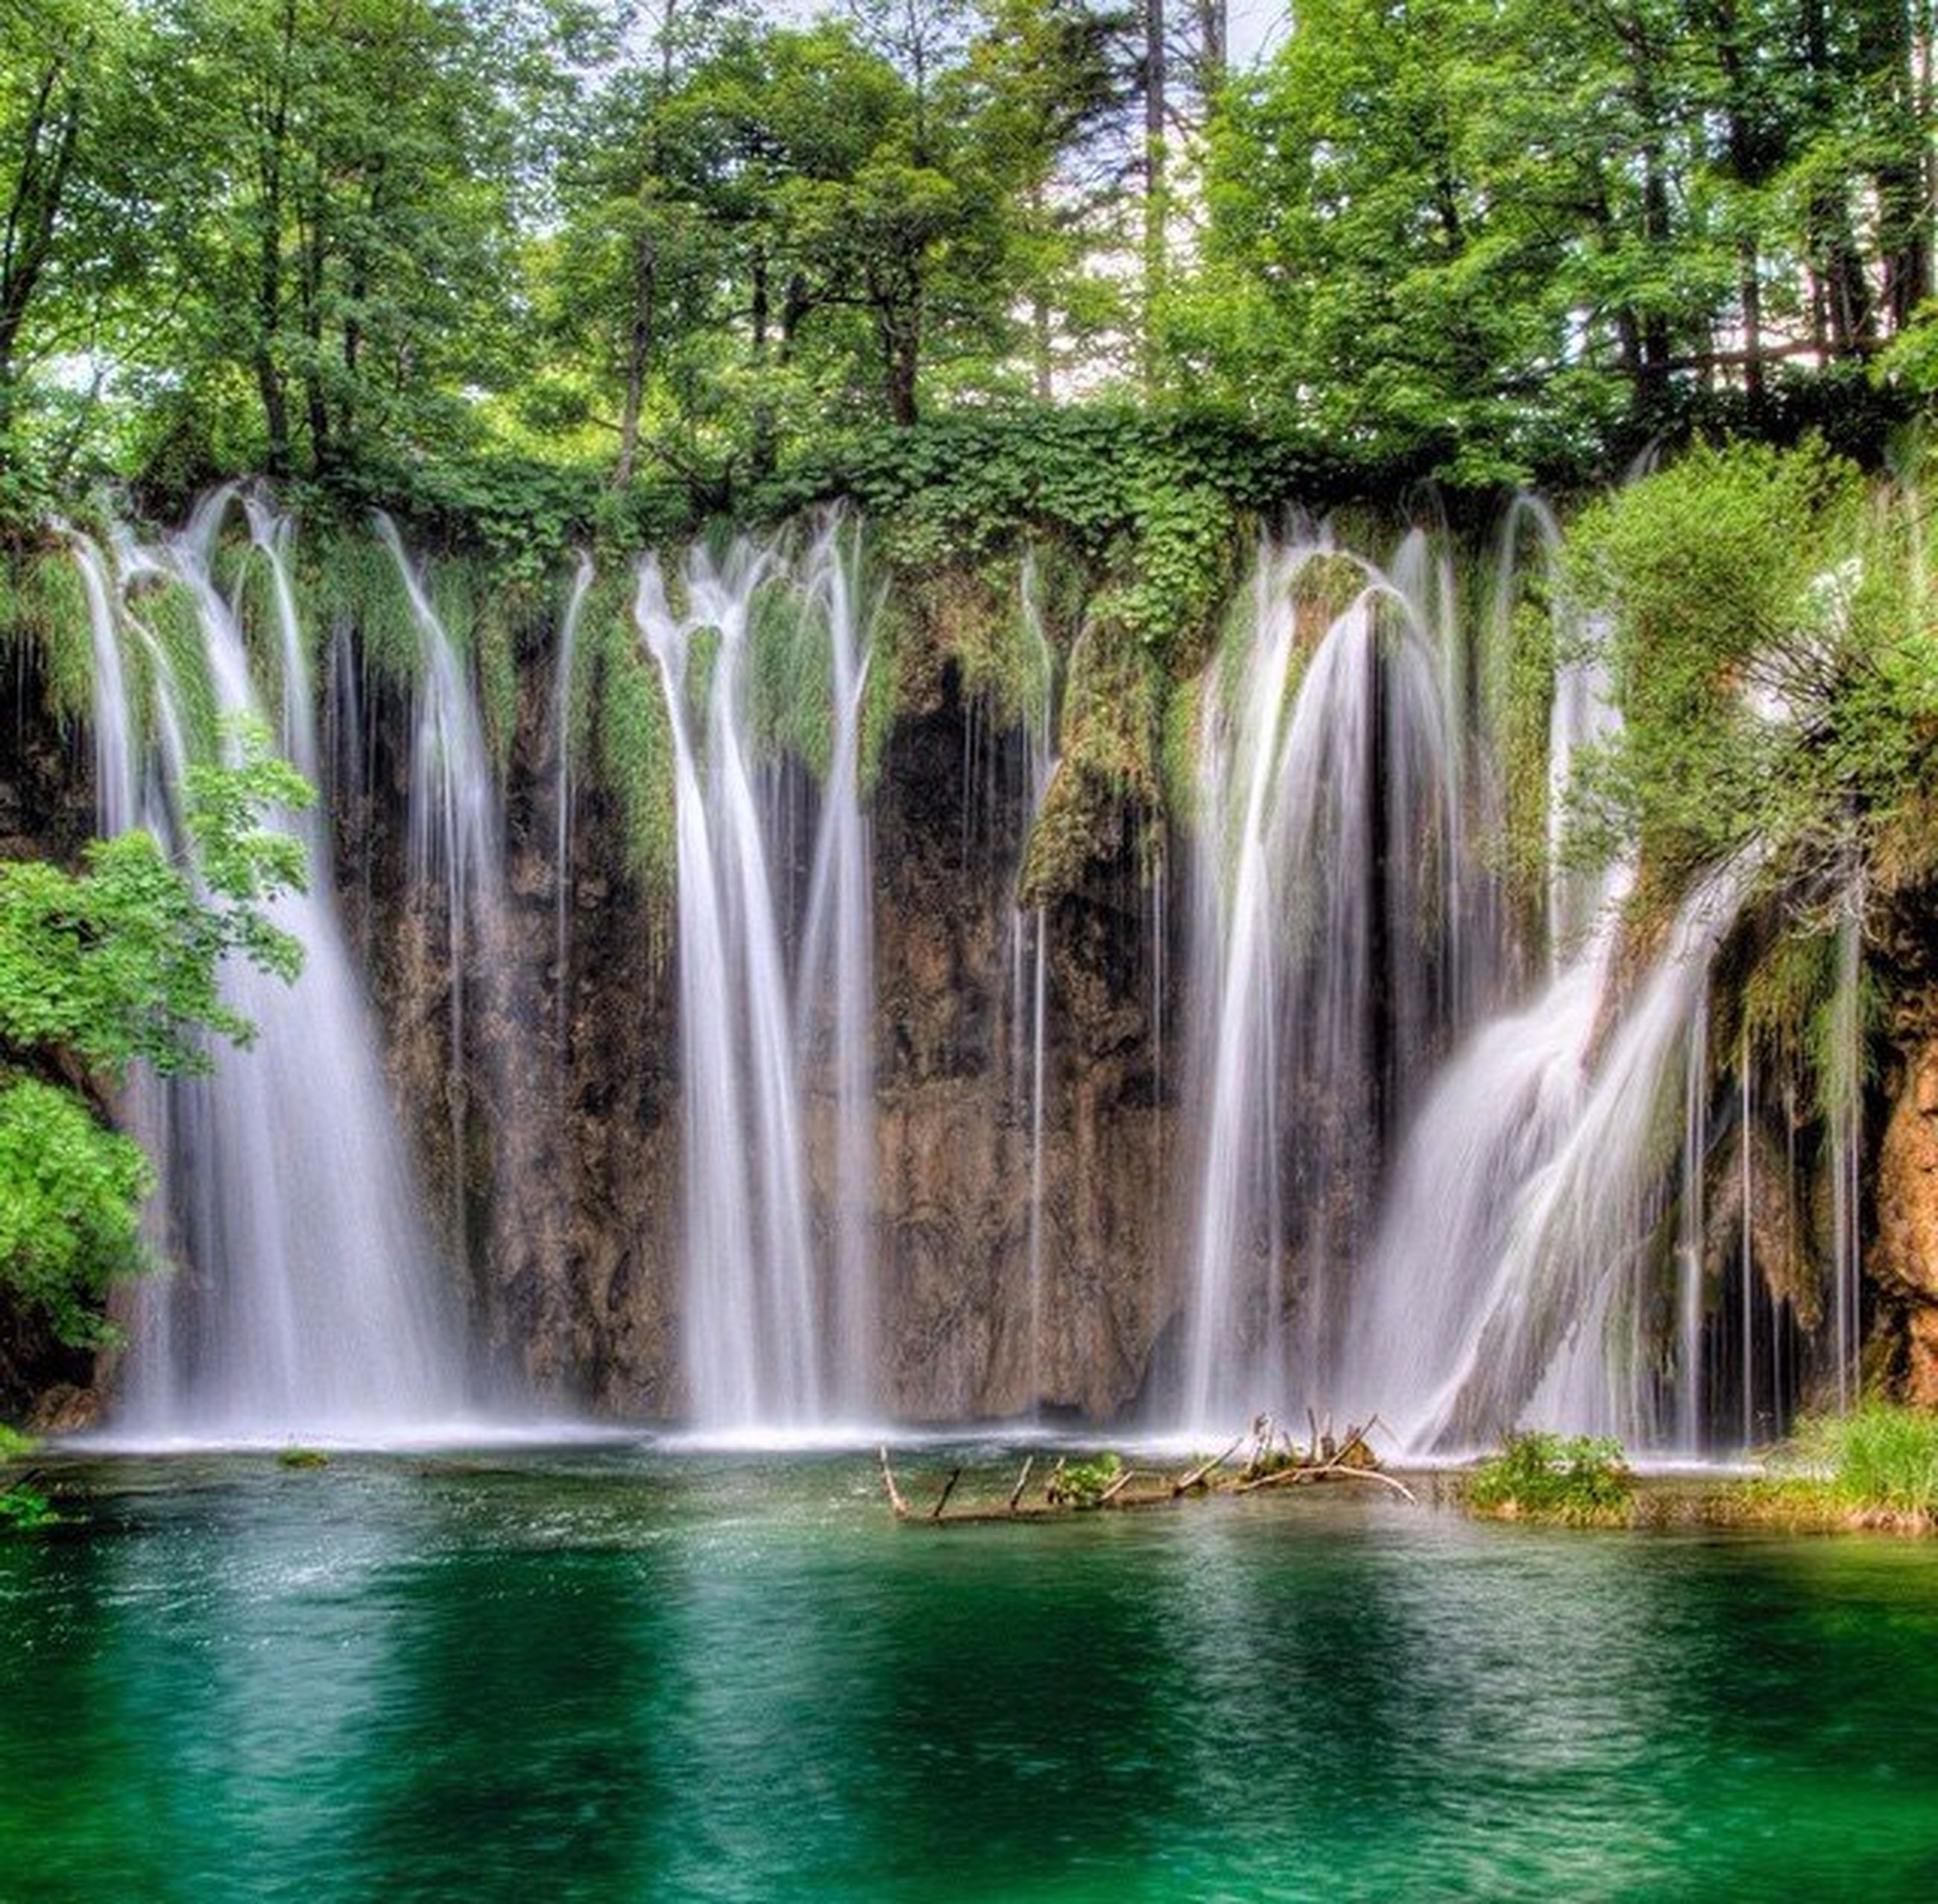 water, waterfall, motion, long exposure, flowing water, tree, beauty in nature, scenics, flowing, splashing, nature, forest, waterfront, blurred motion, idyllic, environment, fountain, travel destinations, growth, day